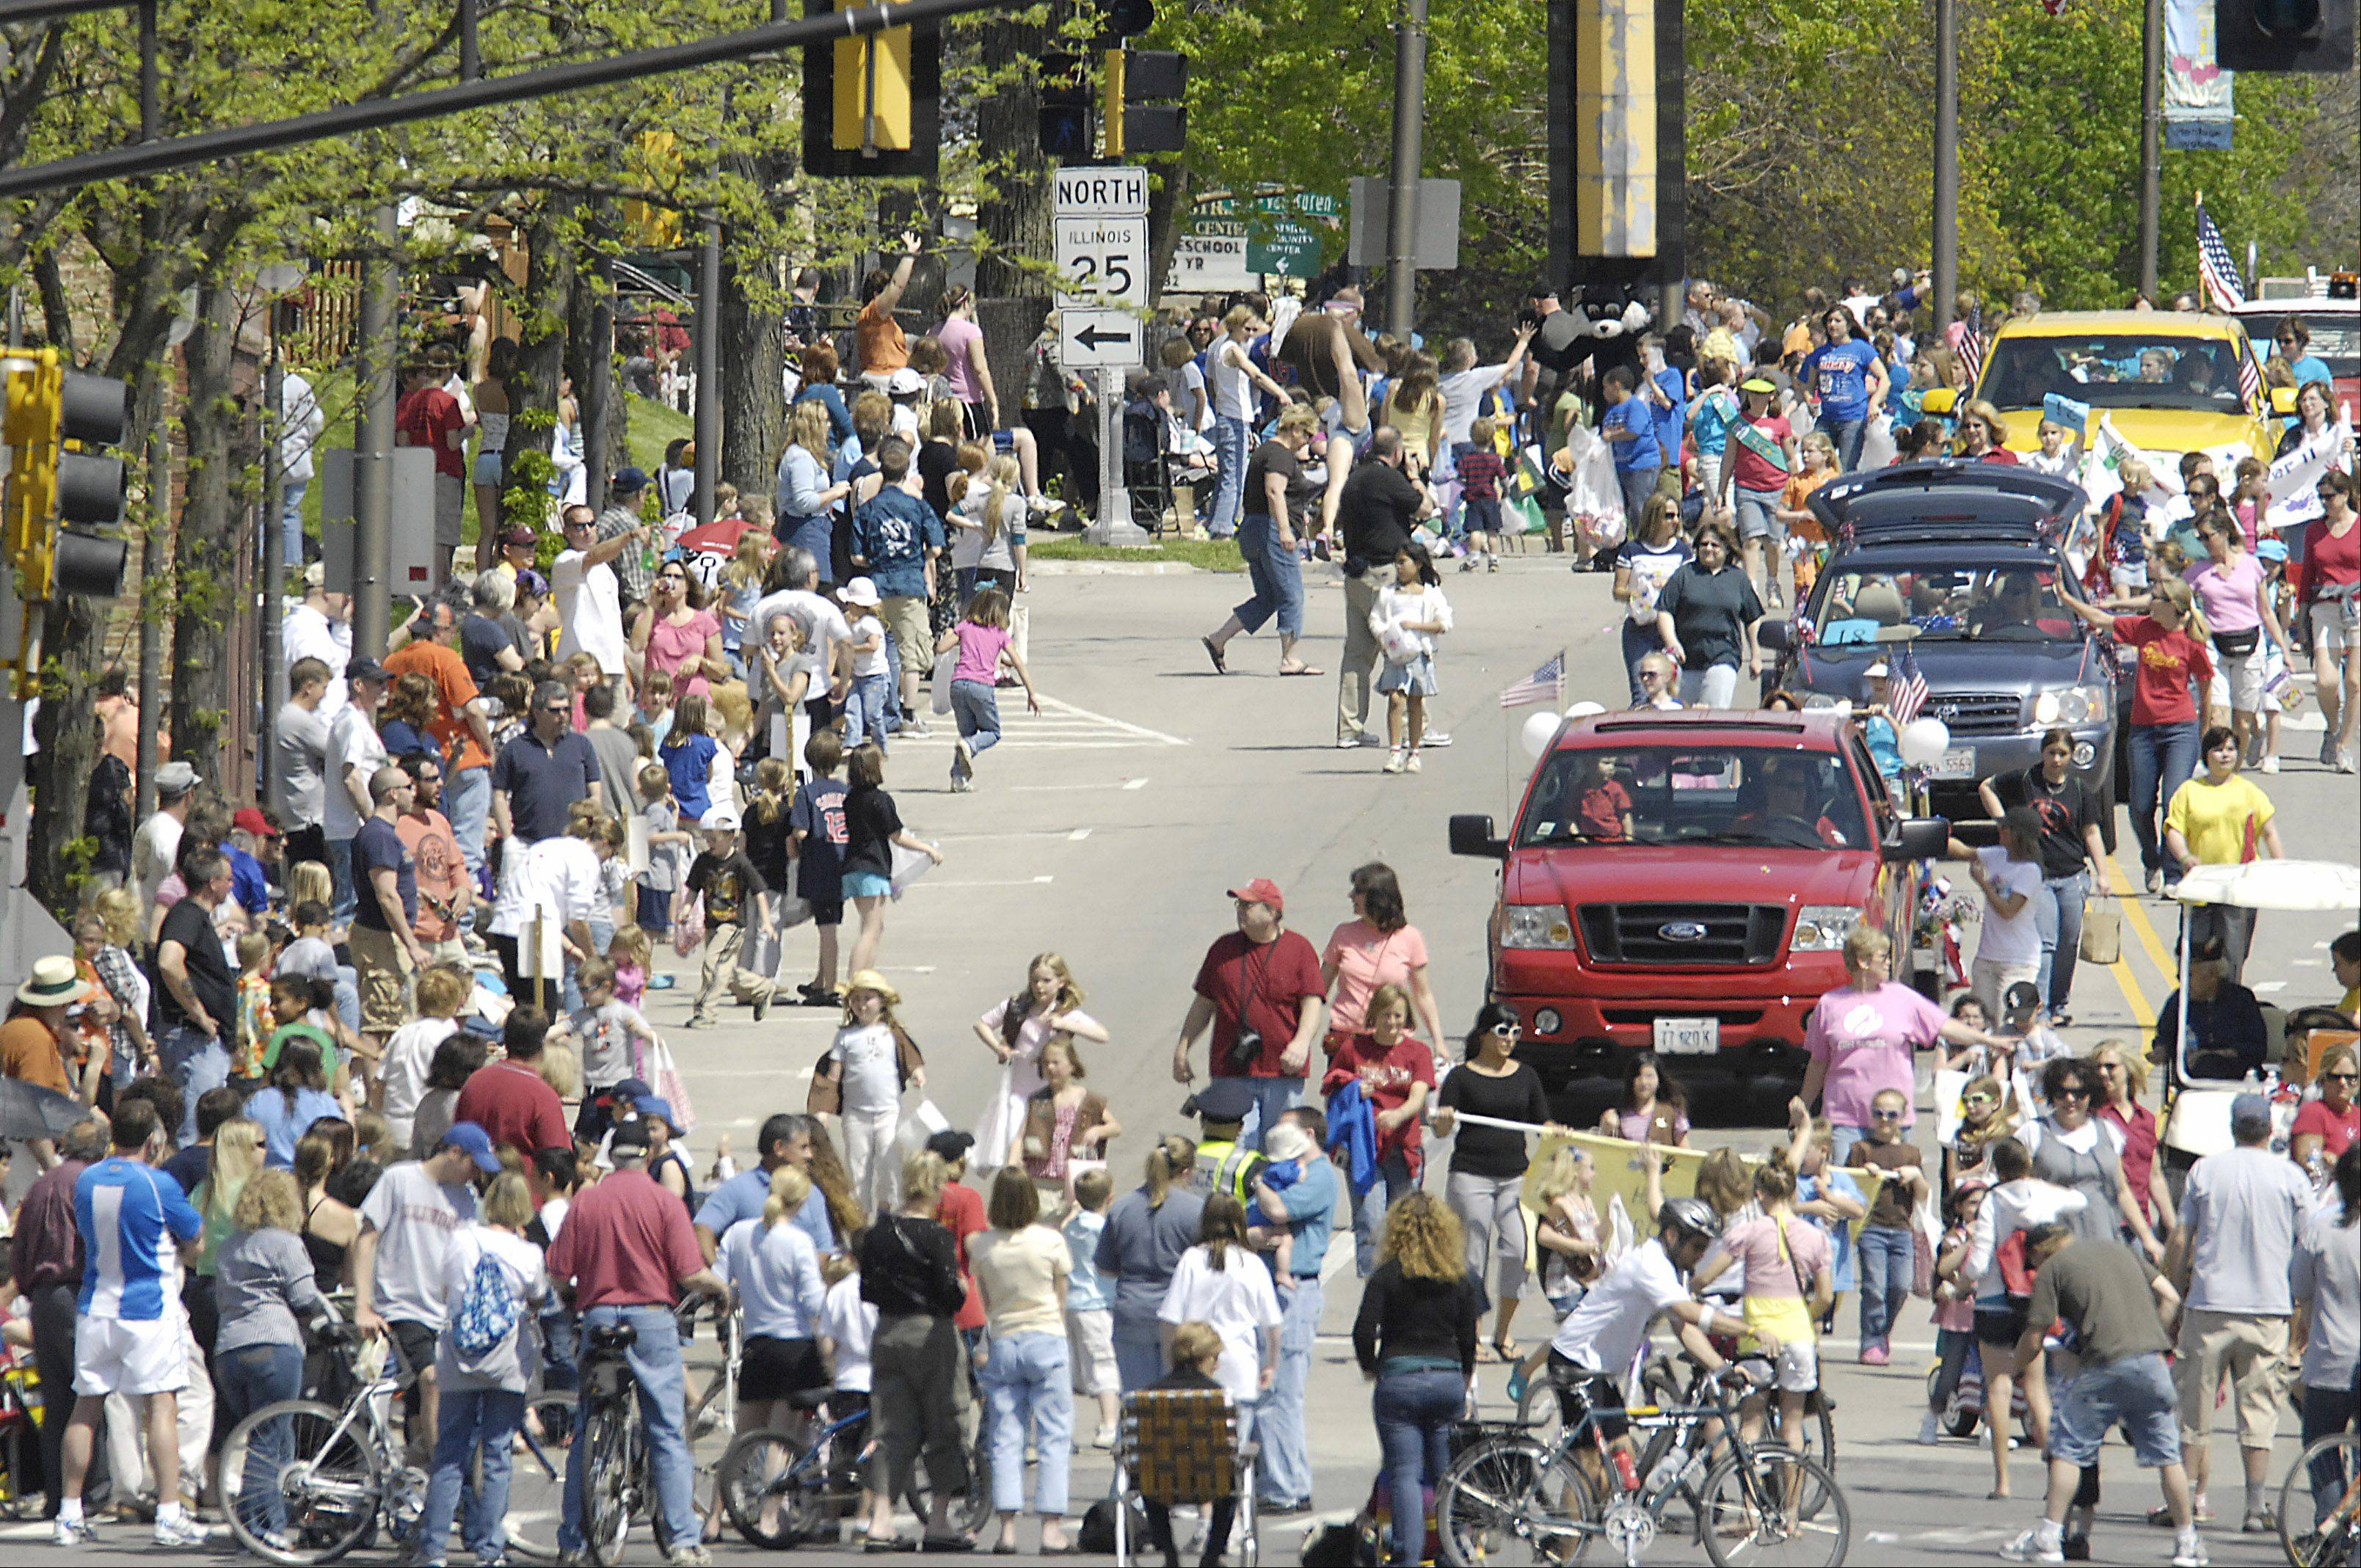 The Loyalty Day Parade brings quite a crowd to Batavia.